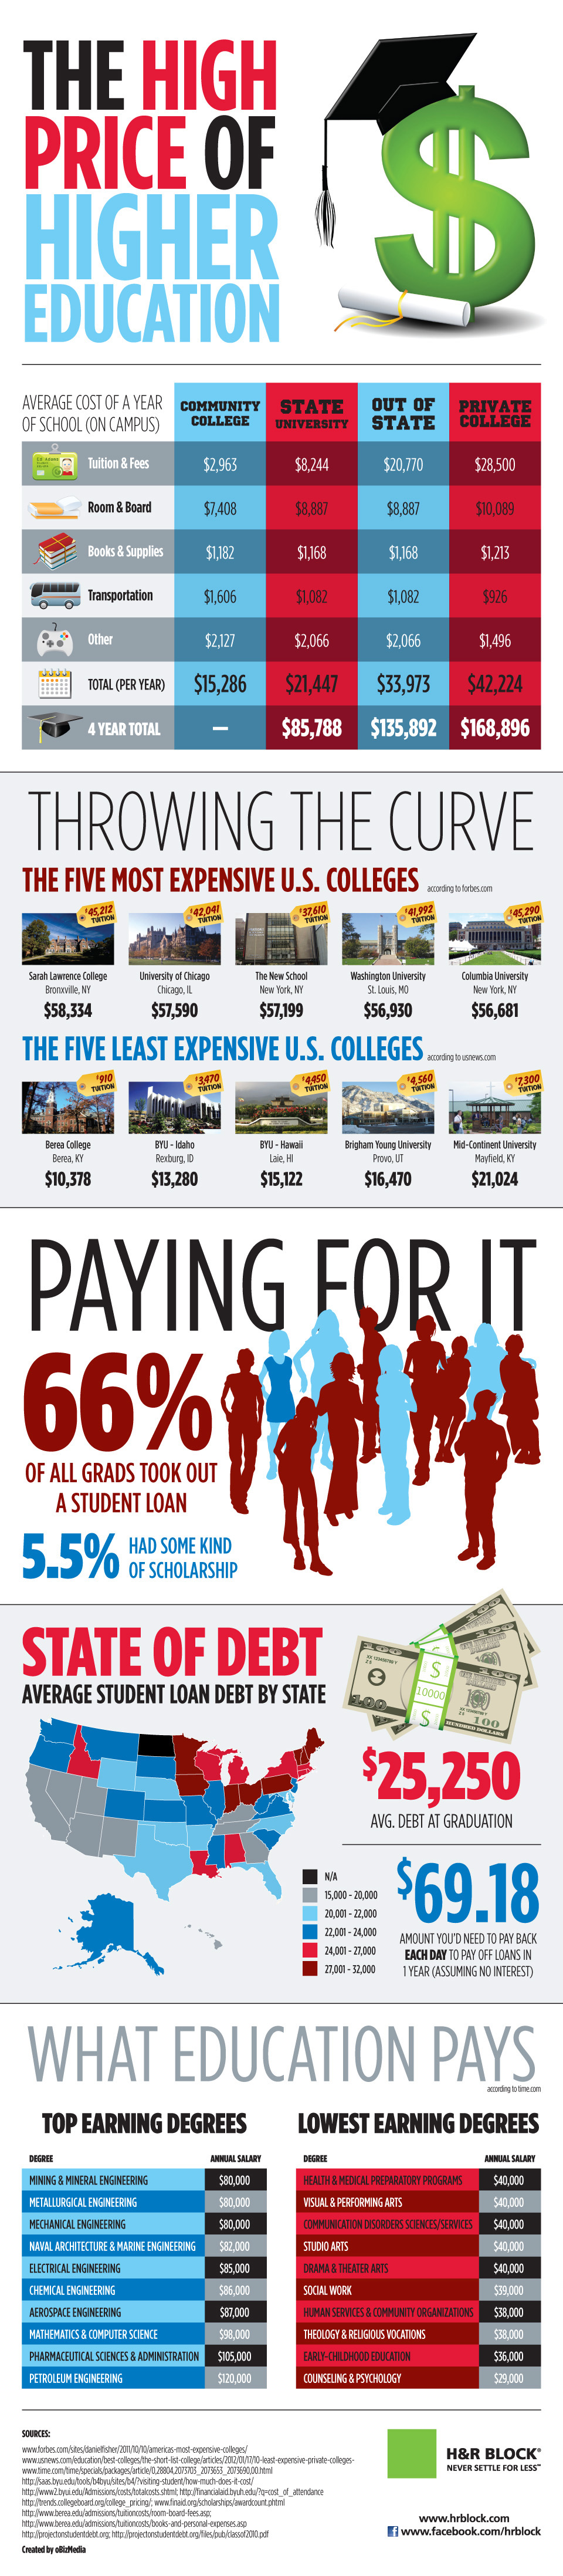 Tax Credits For Higher Education H R Block Educational Infographic Higher Education Scholarships For College